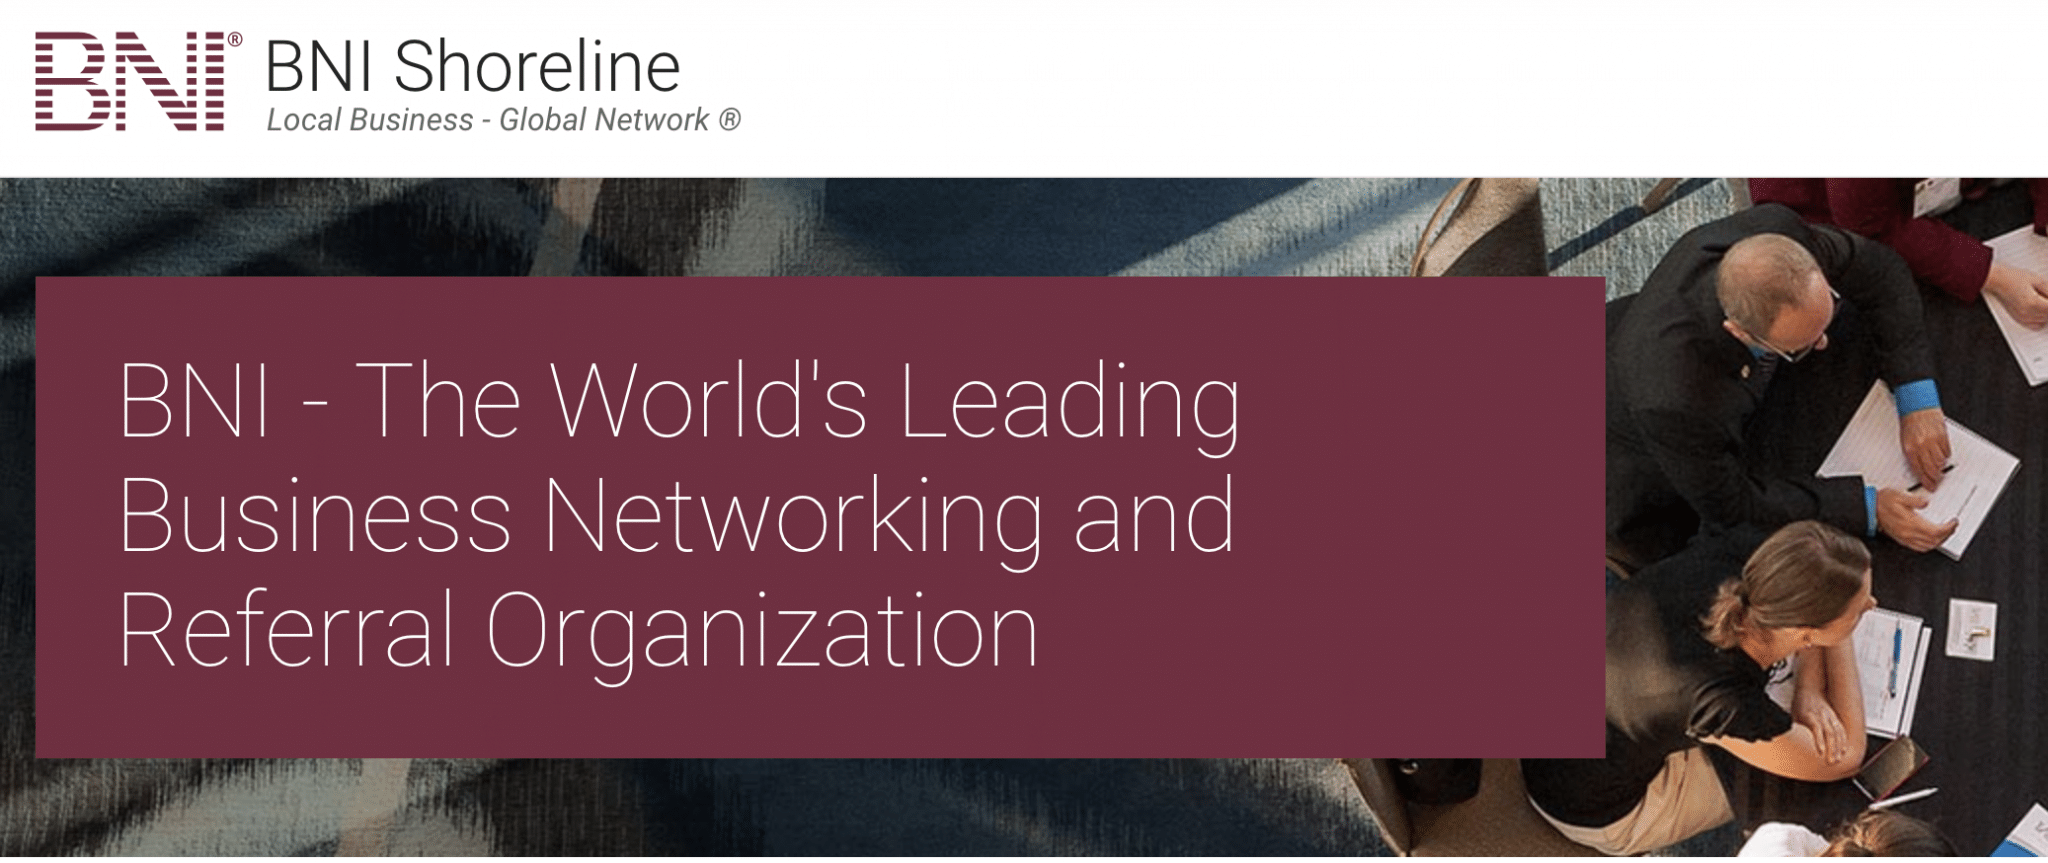 BNI Shoreline The Worlds Leading Business Networking and Referral Organization